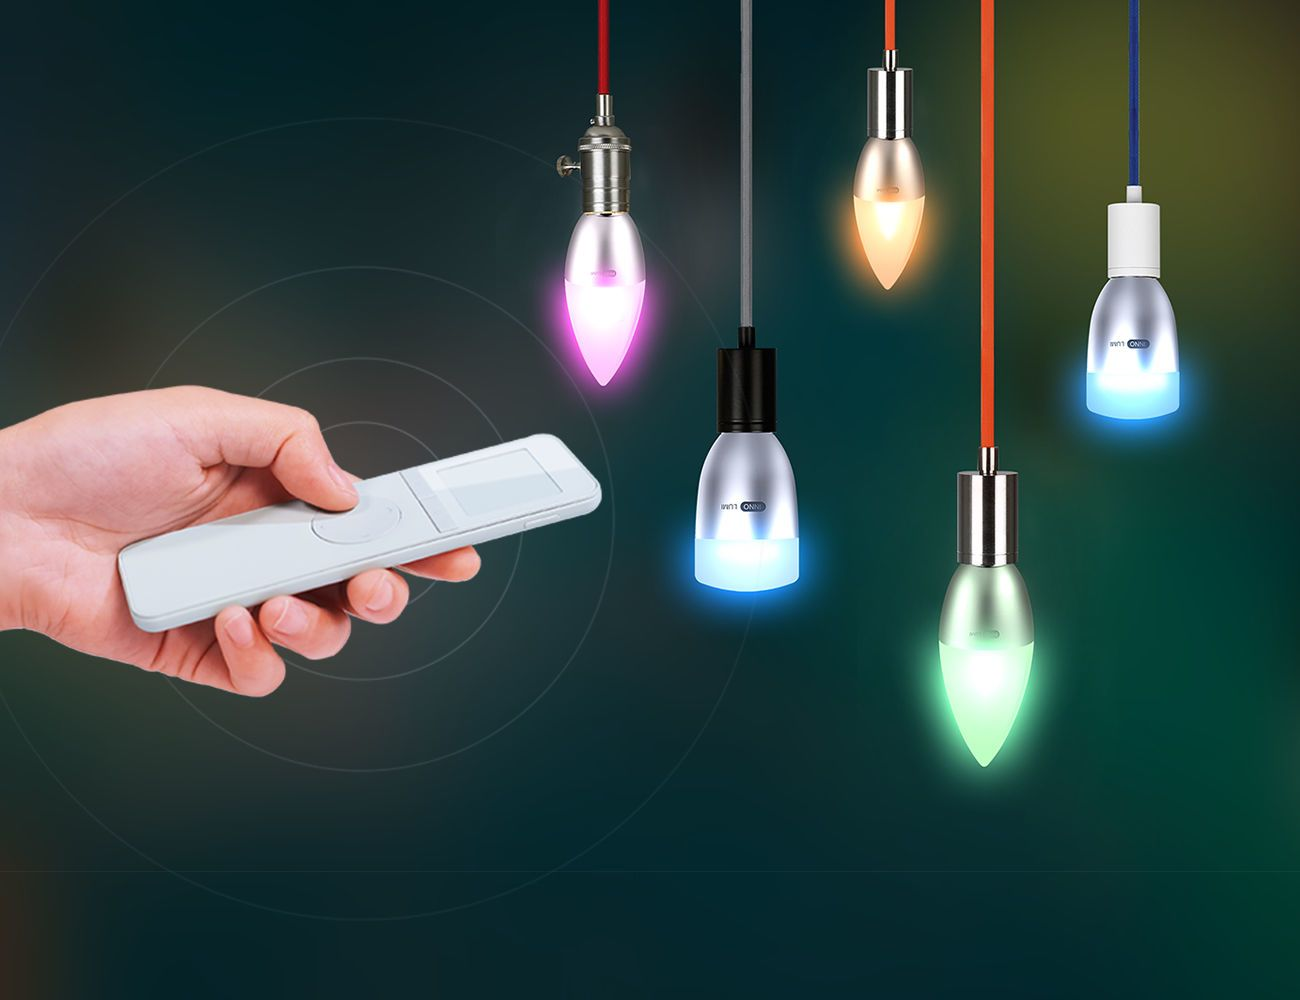 INNO LUMI smart lighting